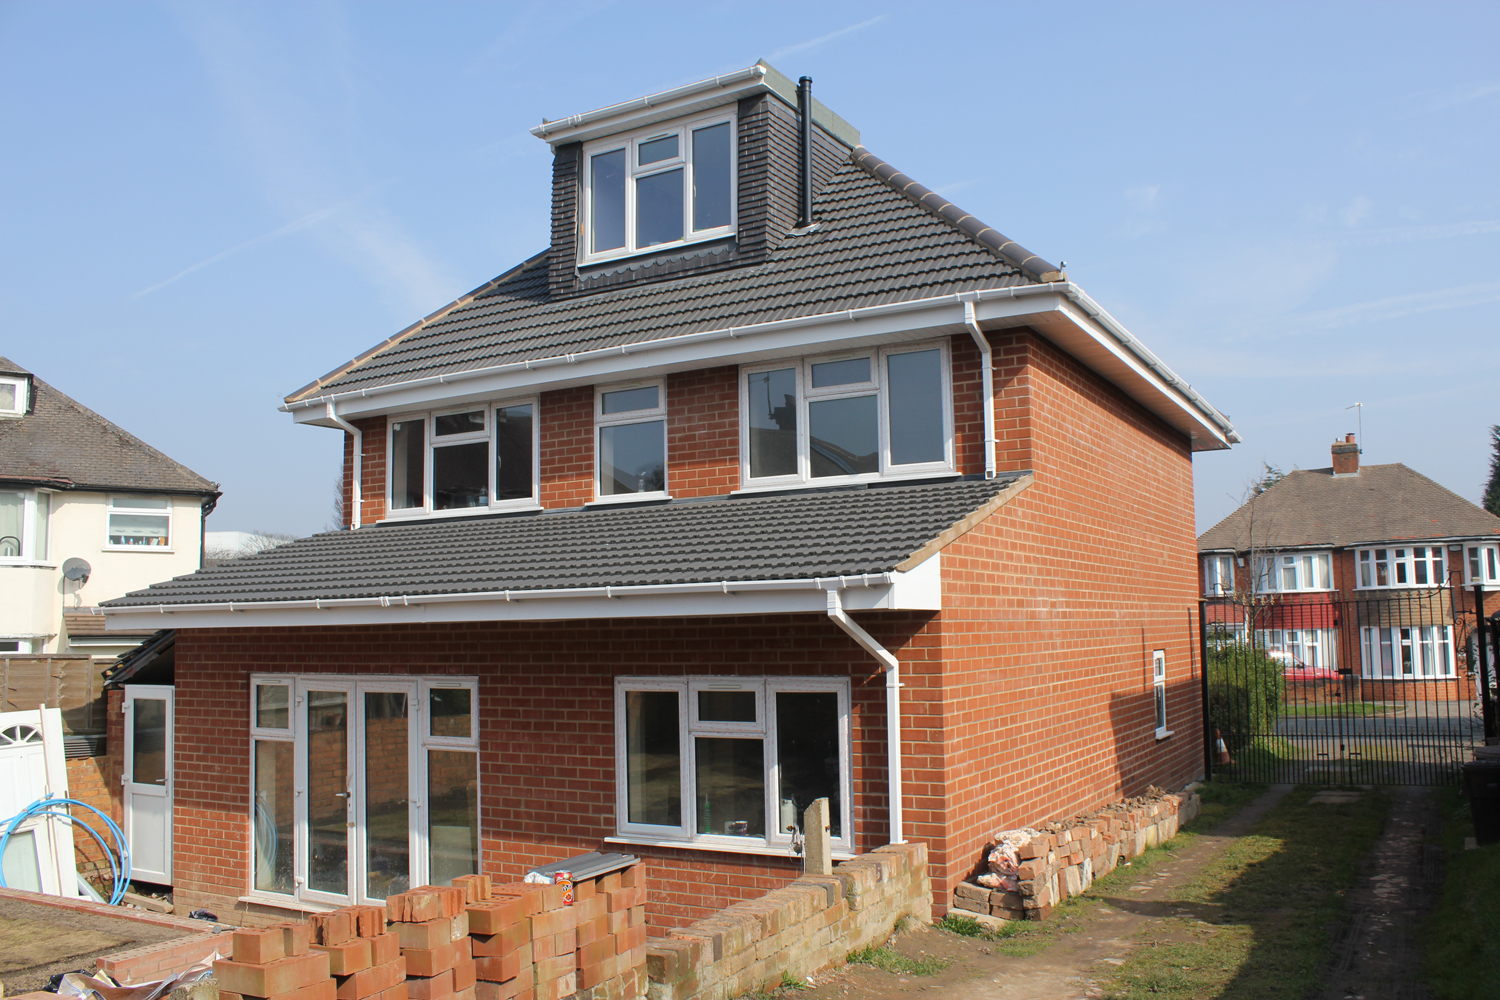 1930's rear extension with loft conversion